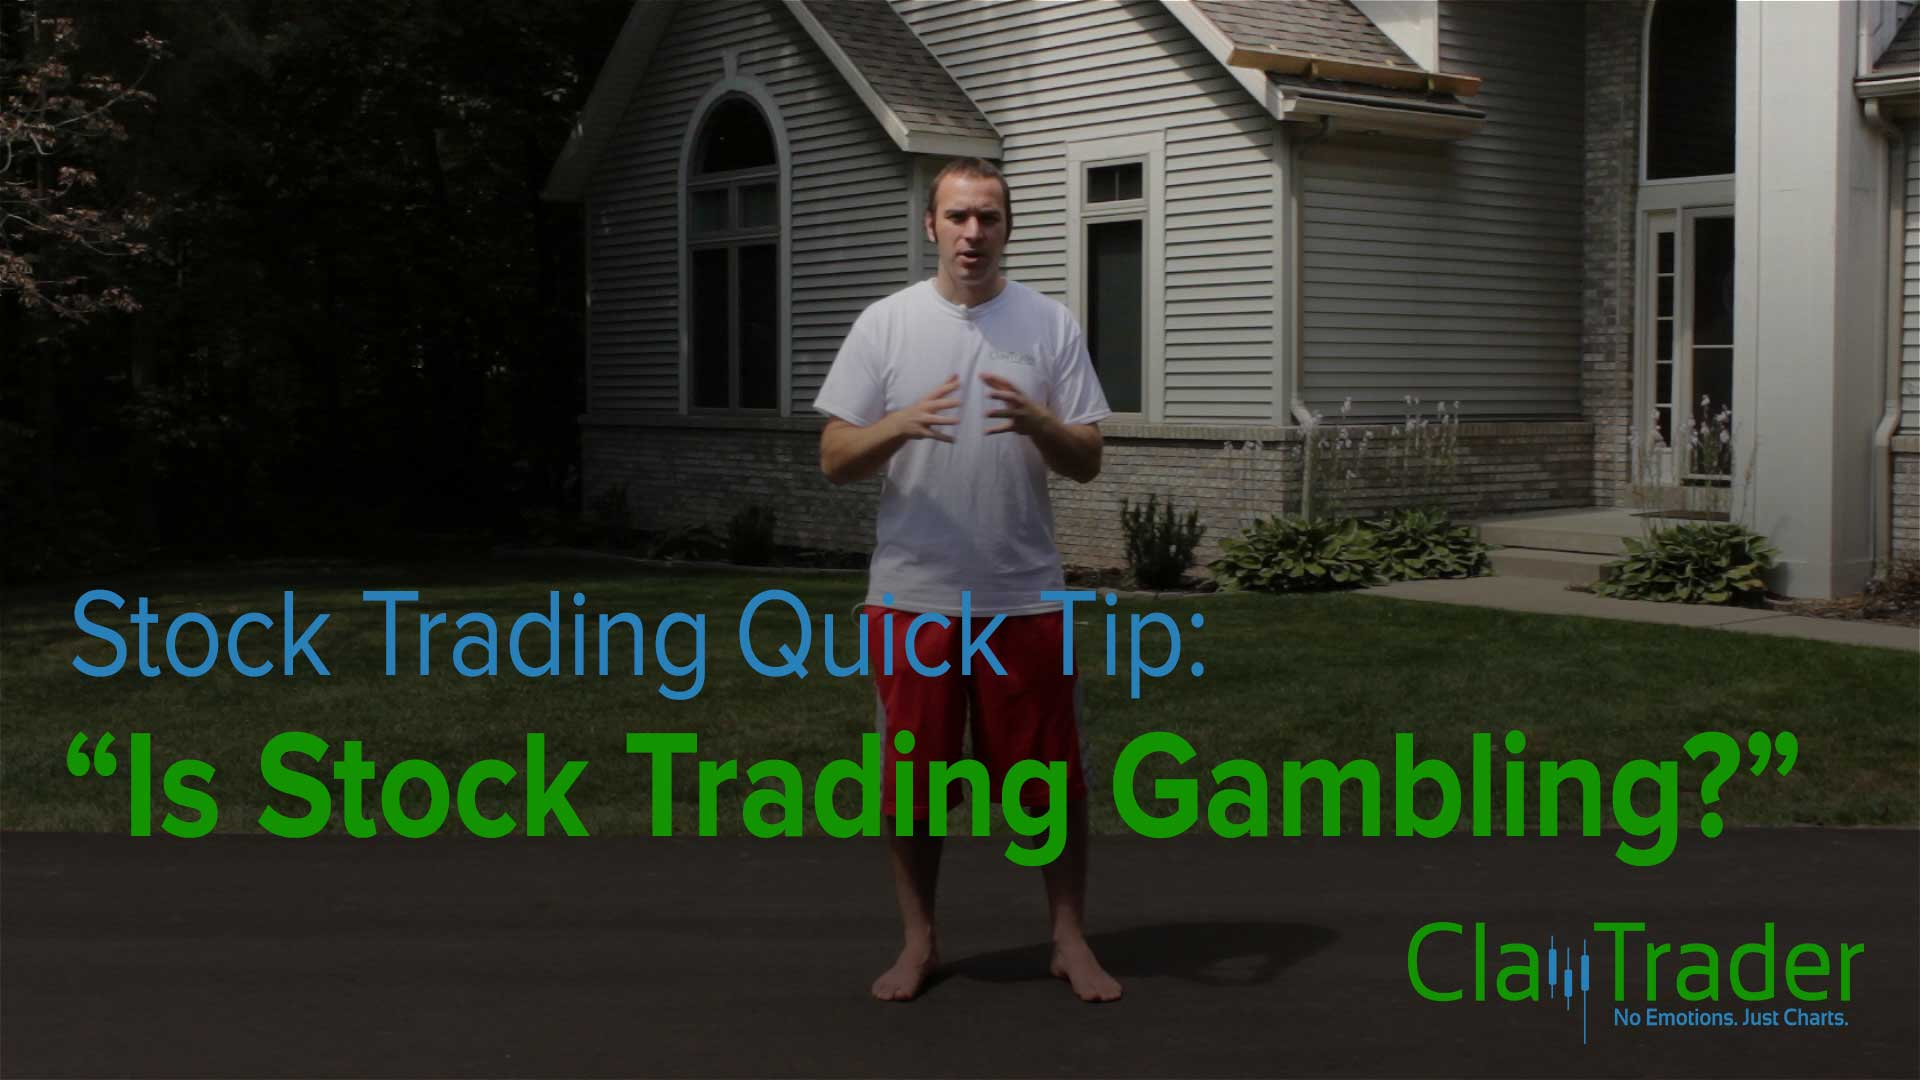 Stock Trading Quick Tip - Is Stock Trading Gambling